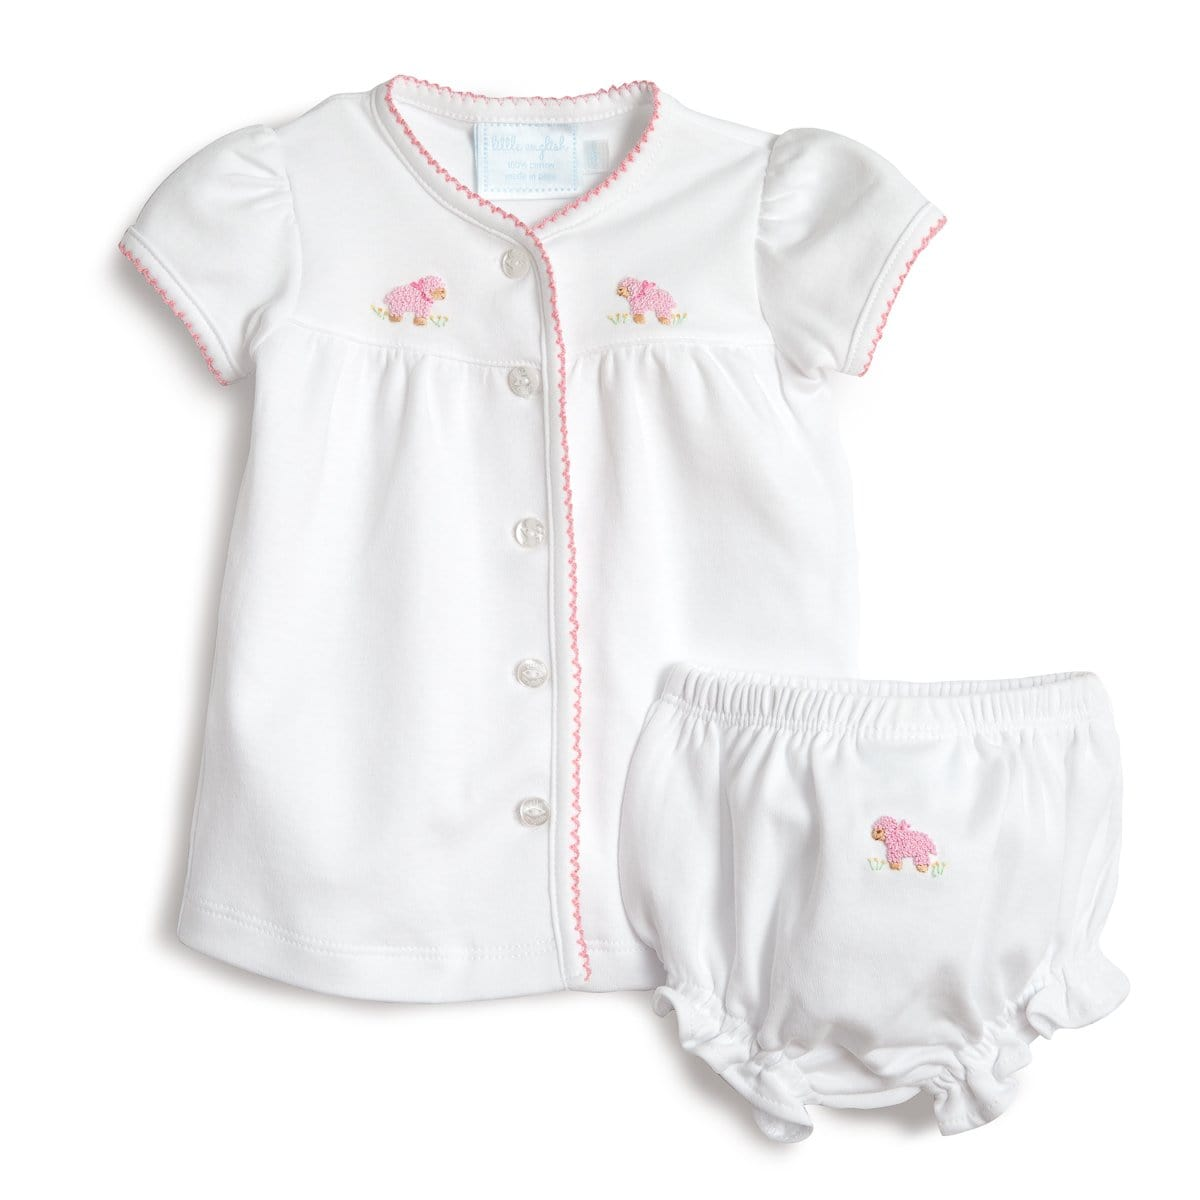 pinpoint knit layette set with pink sheep embroidery